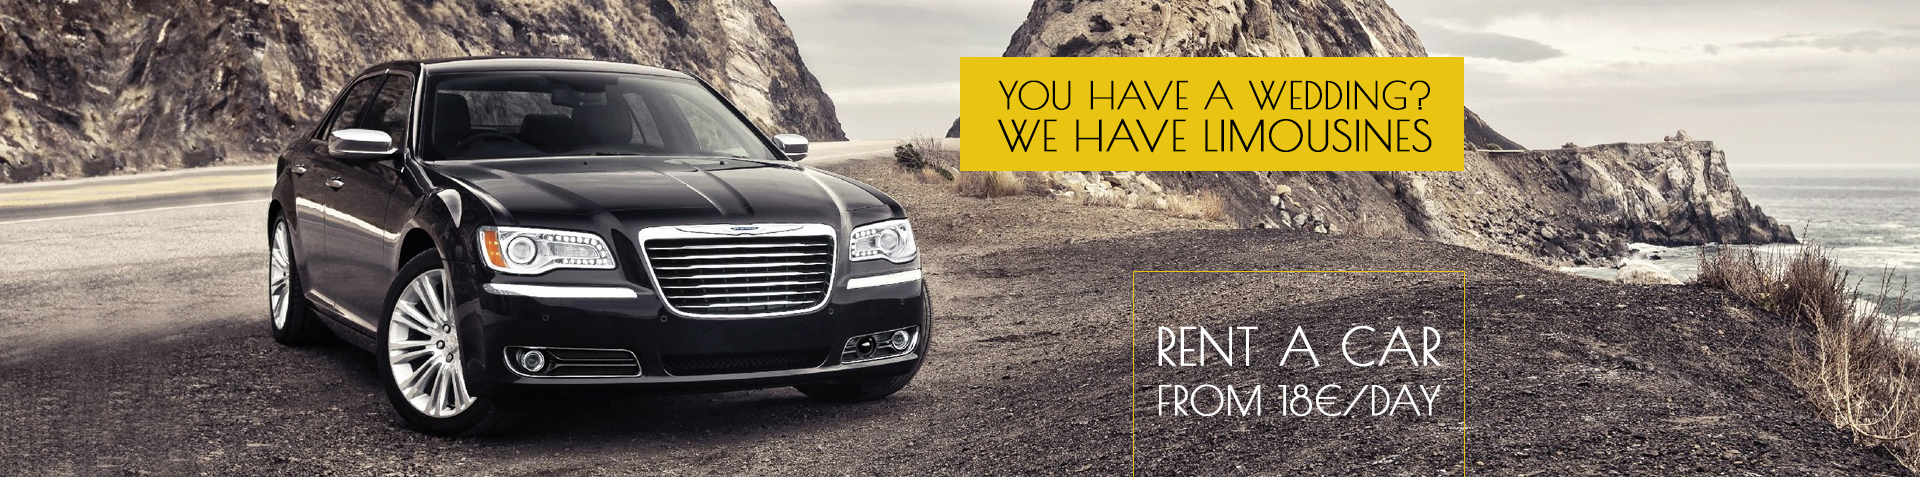 You have a wedding?  We have limousines!  Rent a car from 18 euro / day